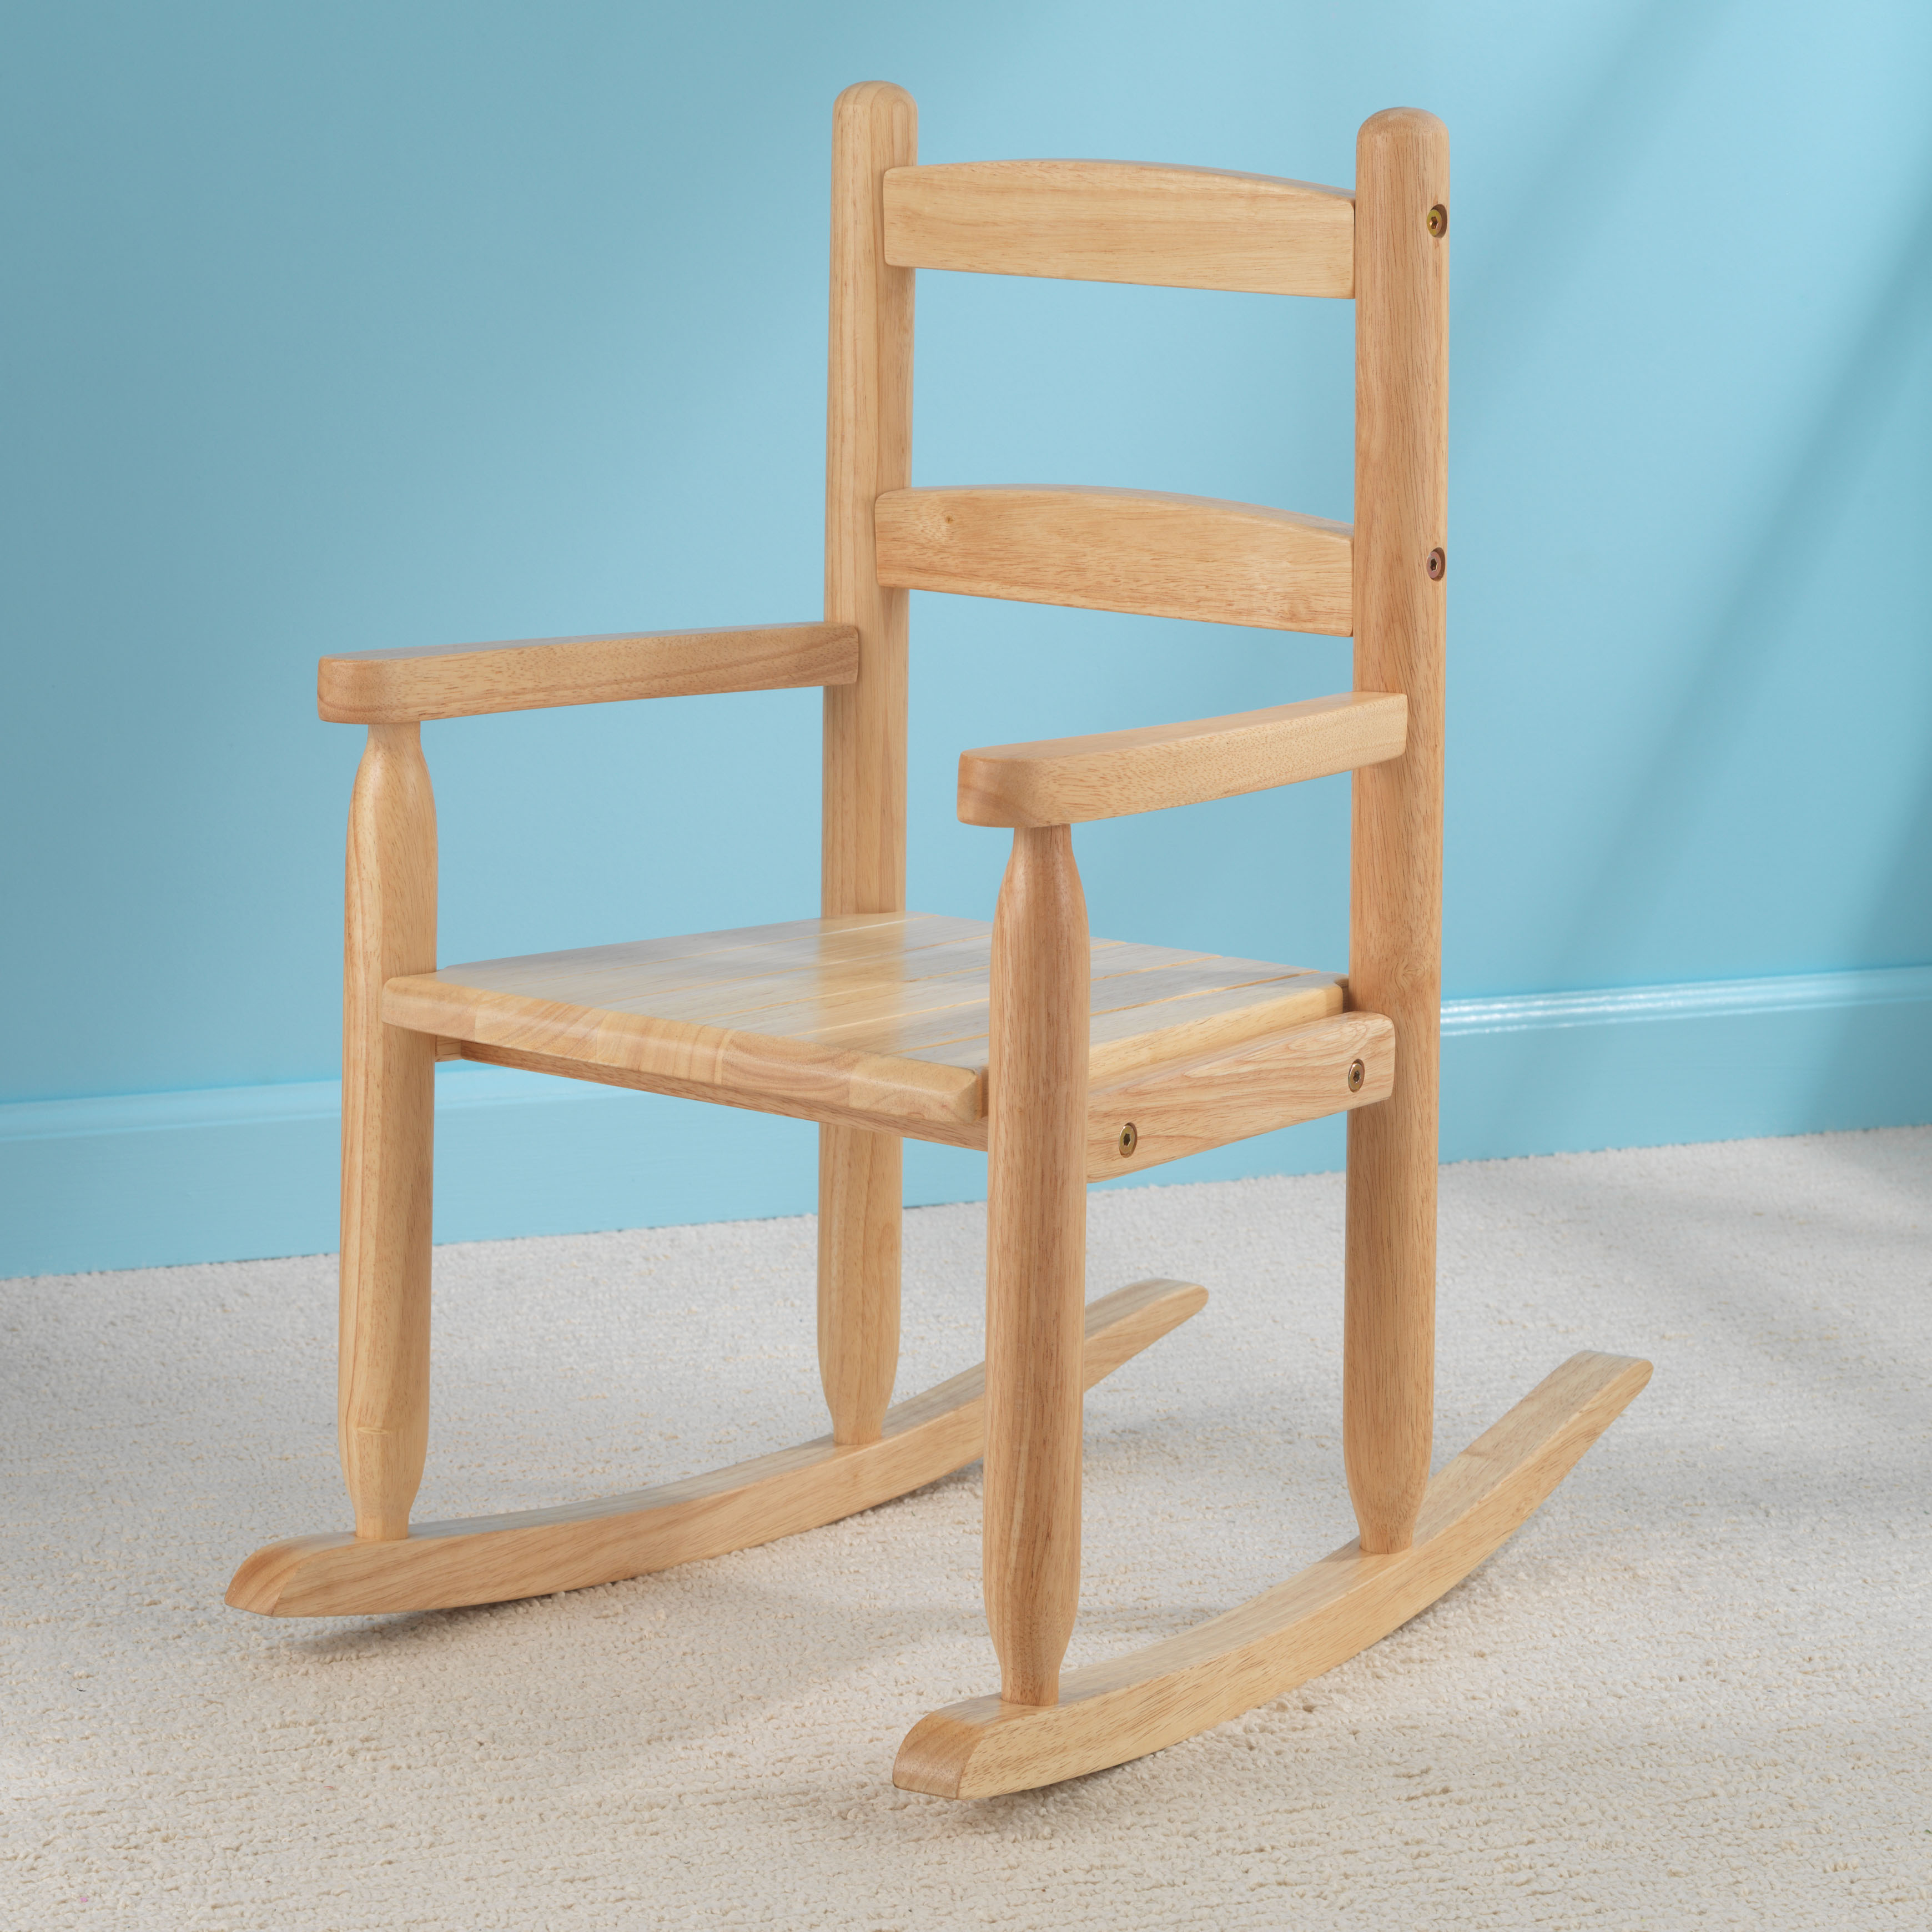 KidKraft   2 Slat Rocking Chair   Walmart com. Kidkraft Rocking Chair Cherry. Home Design Ideas